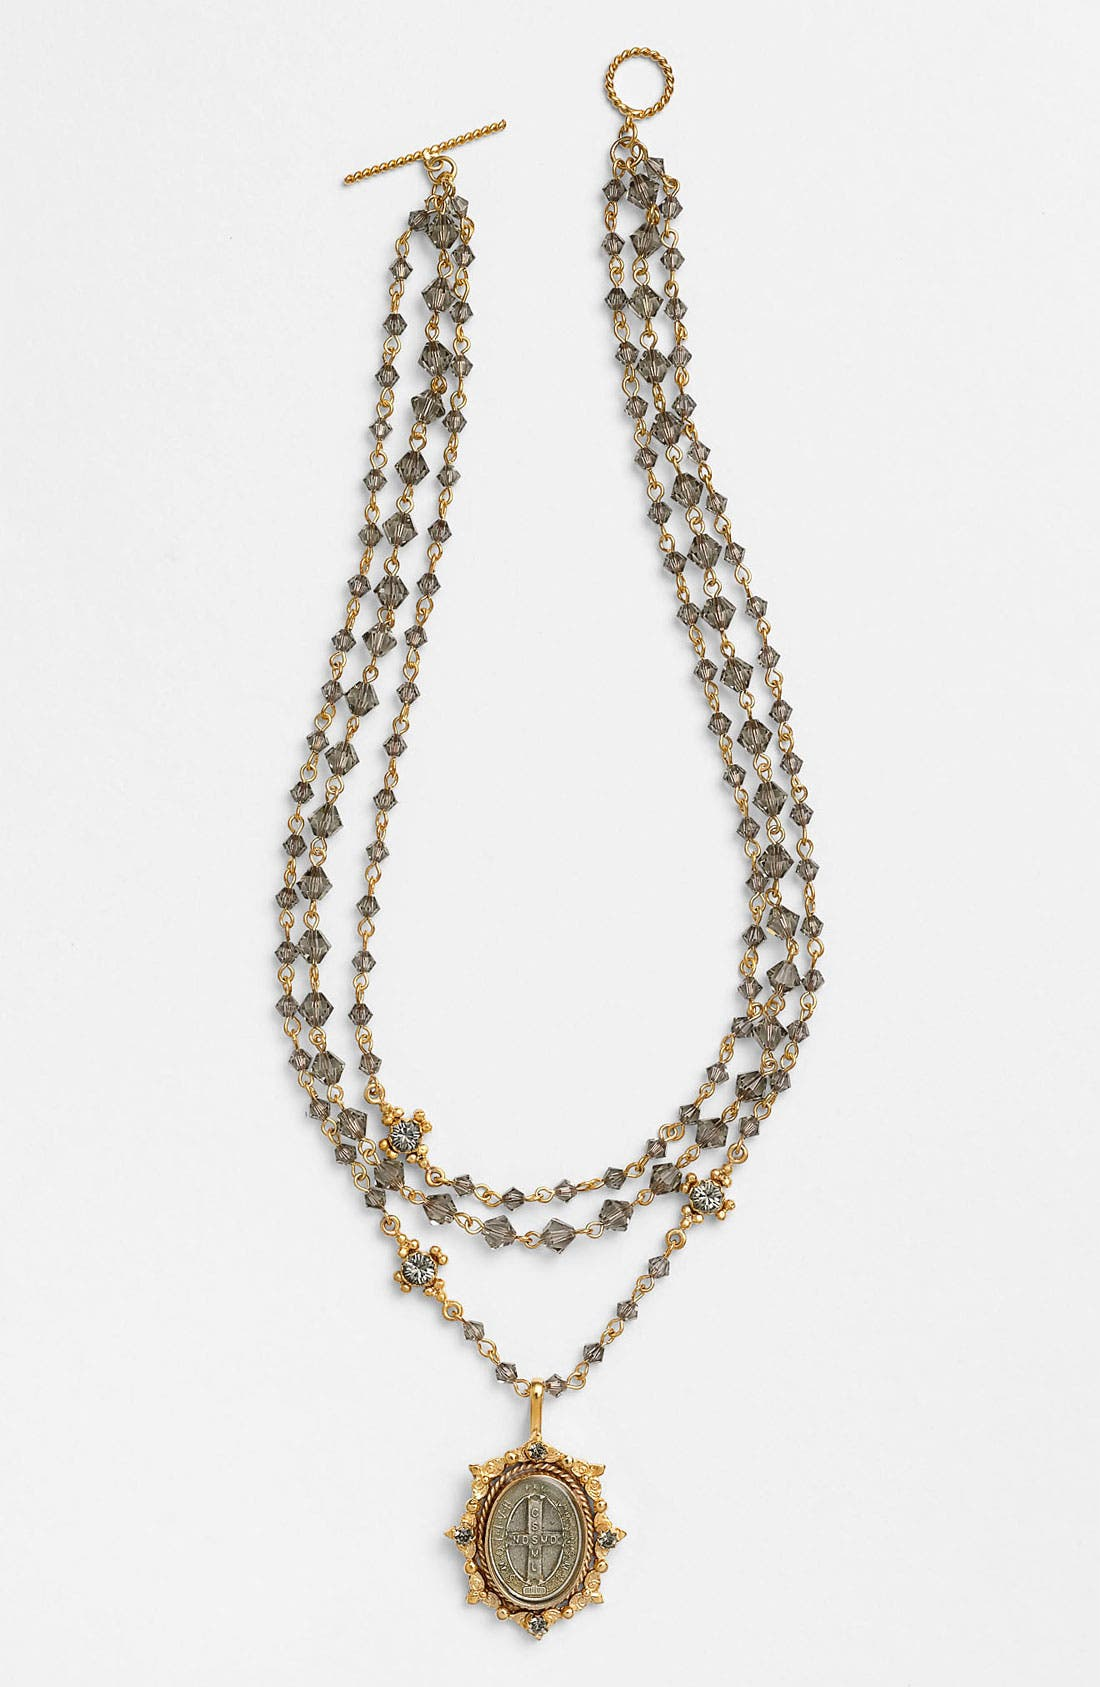 Alternate Image 1 Selected - Virgins Saints & Angels 'Classic Magdalena' Necklace (Nordstrom Exclusive)